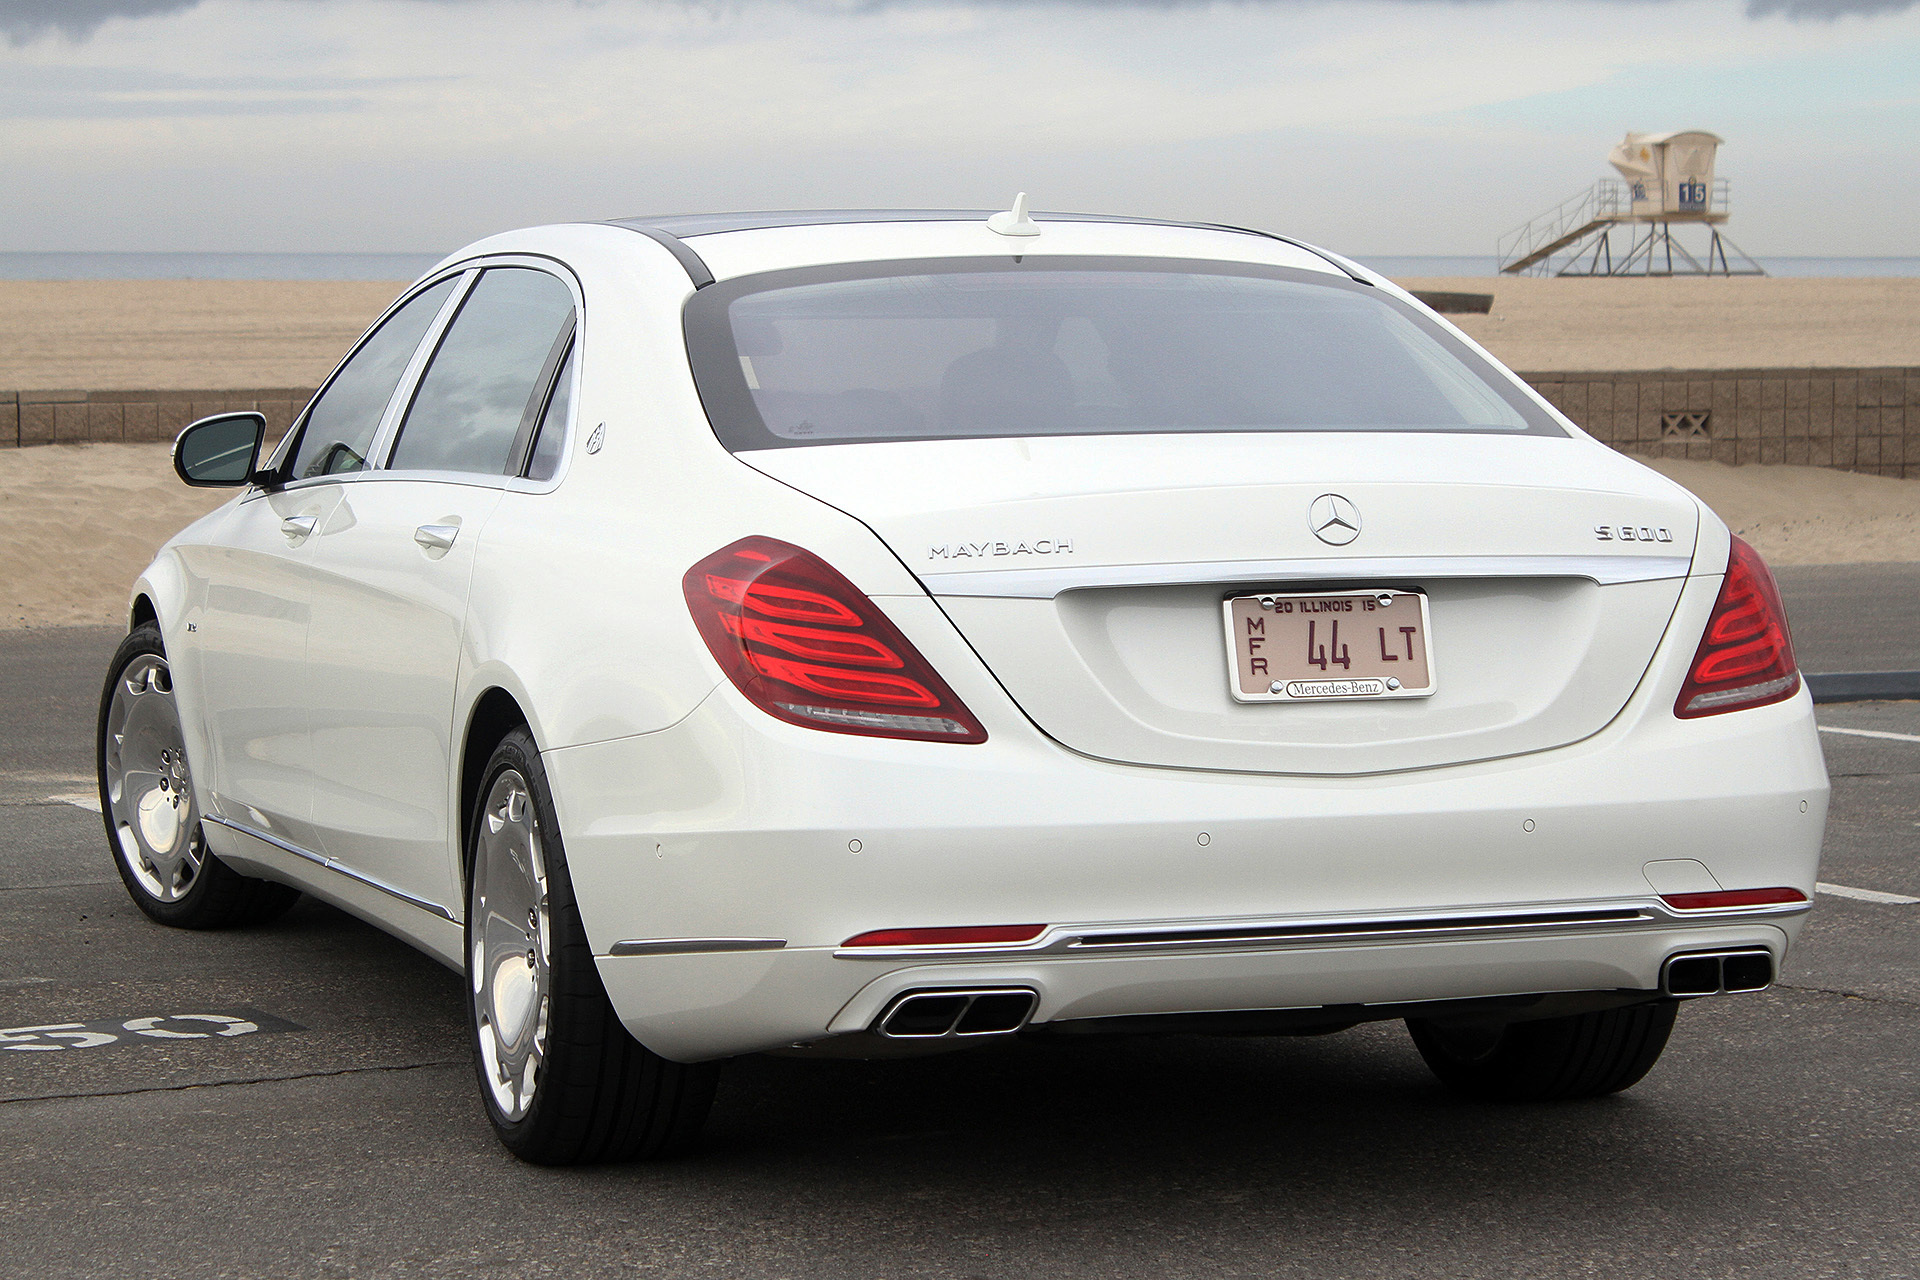 2016 Mercedes Maybach S600 Opulence In Motion 4